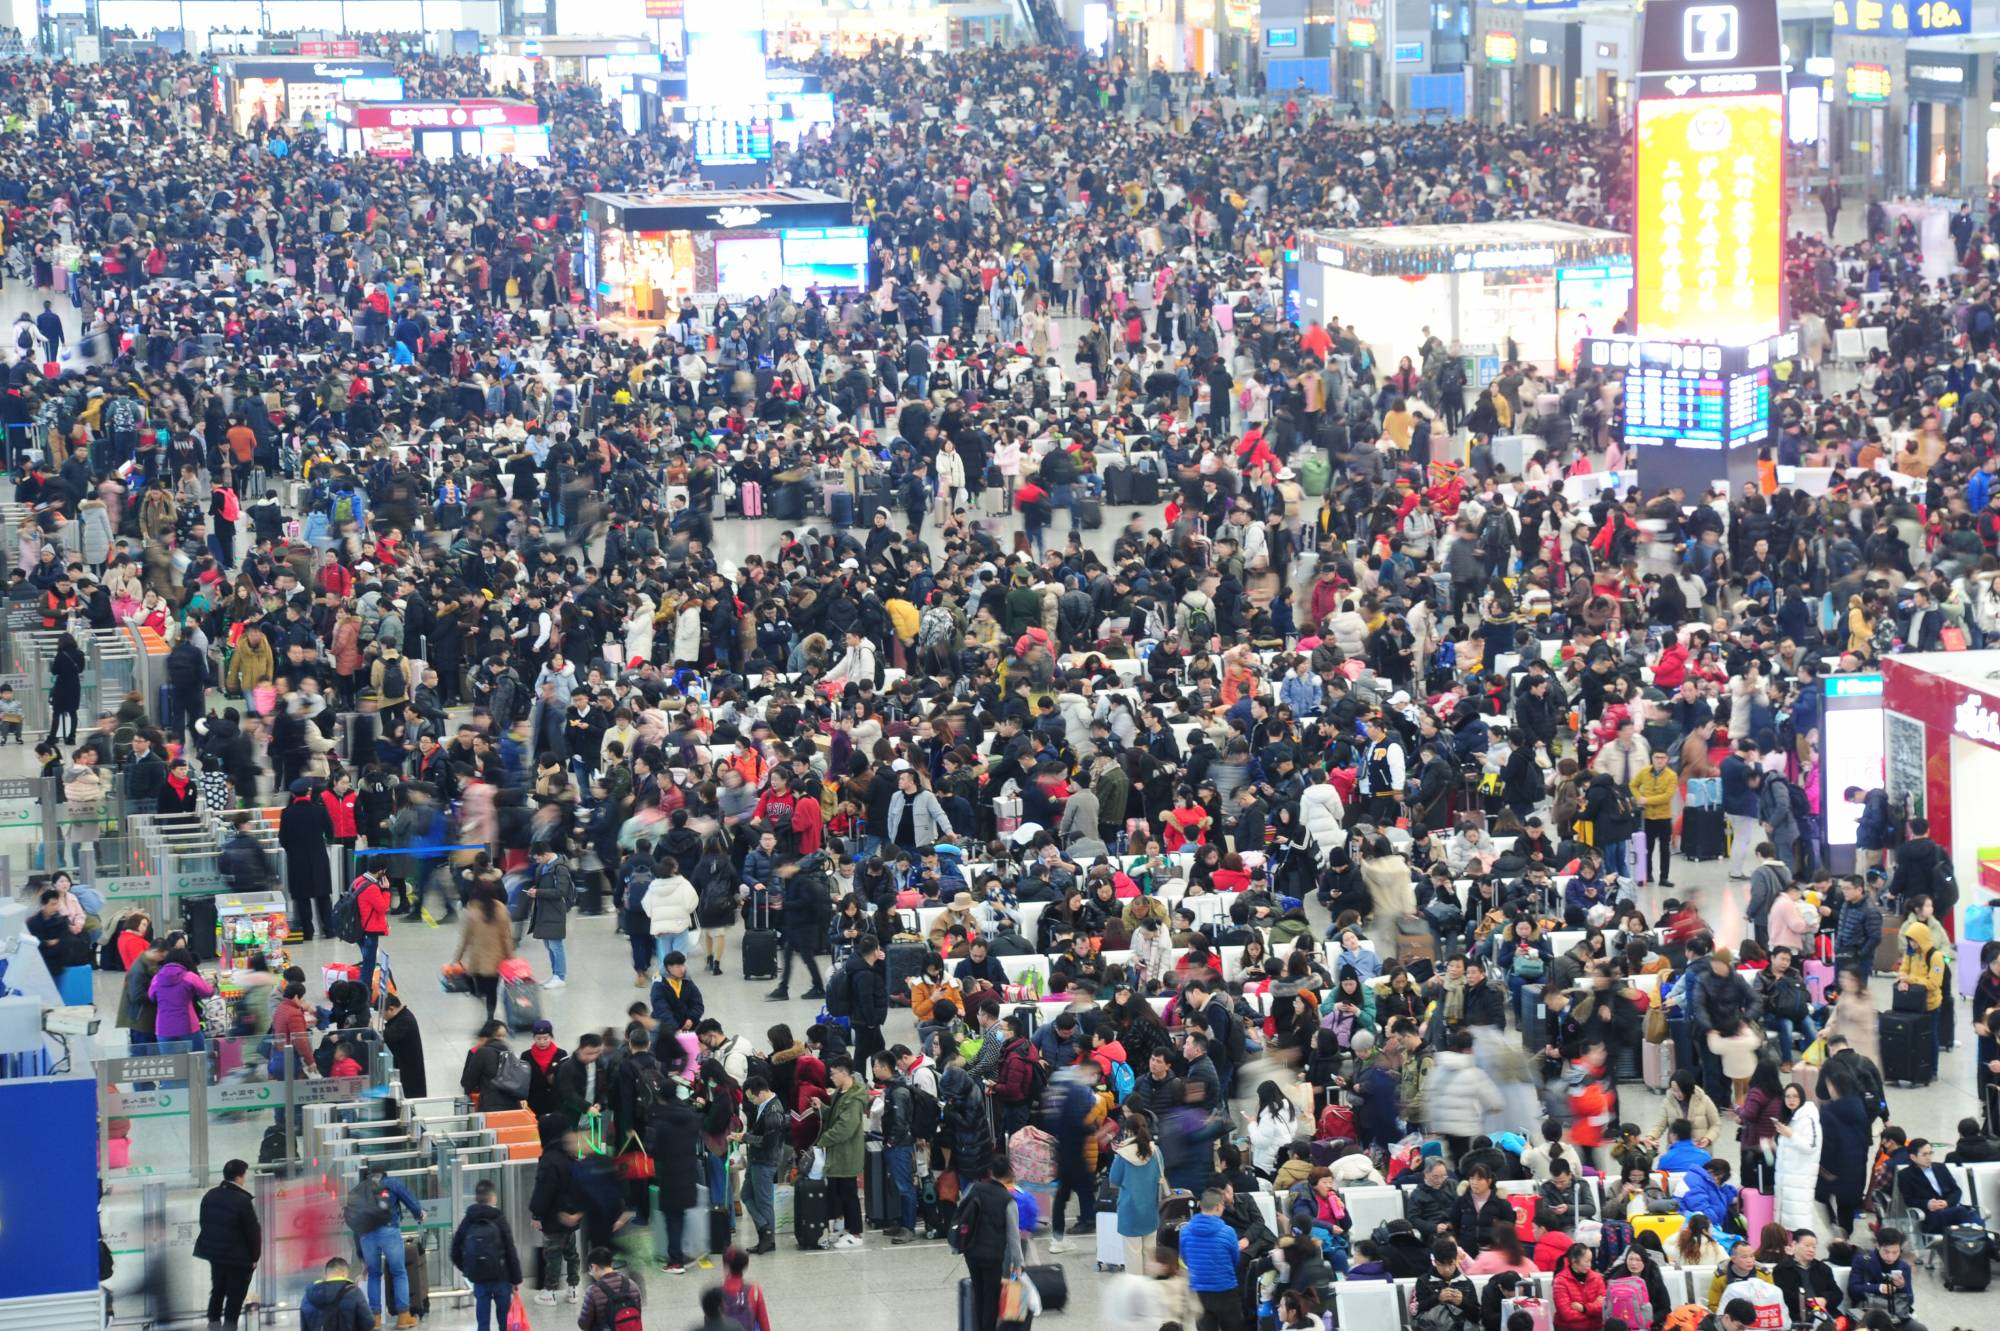 Peak Of Returning Home During Spring Festival In Shanghai, China